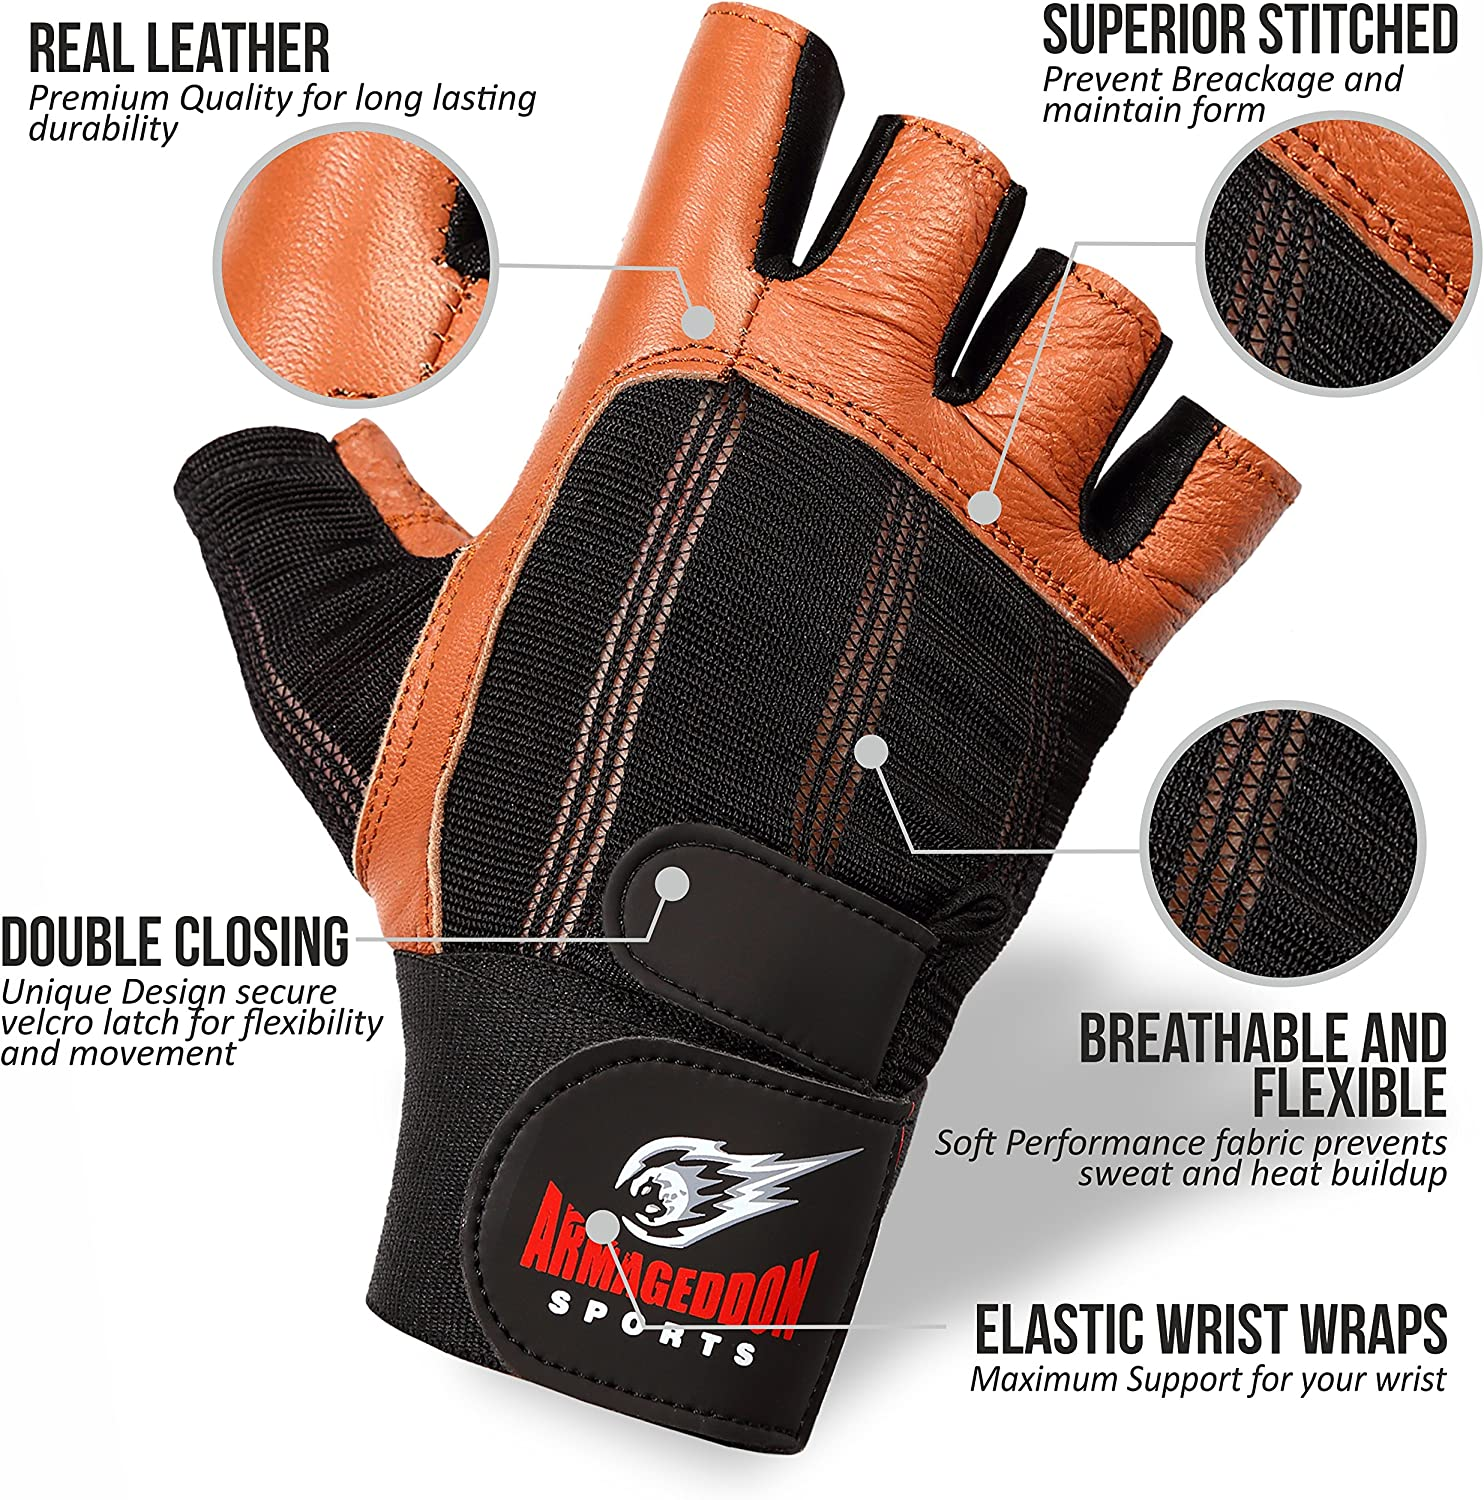 Real Leather Fitness Gloves for Men or Women with Wrist Wraps Perfect for Sport Fitness Gym